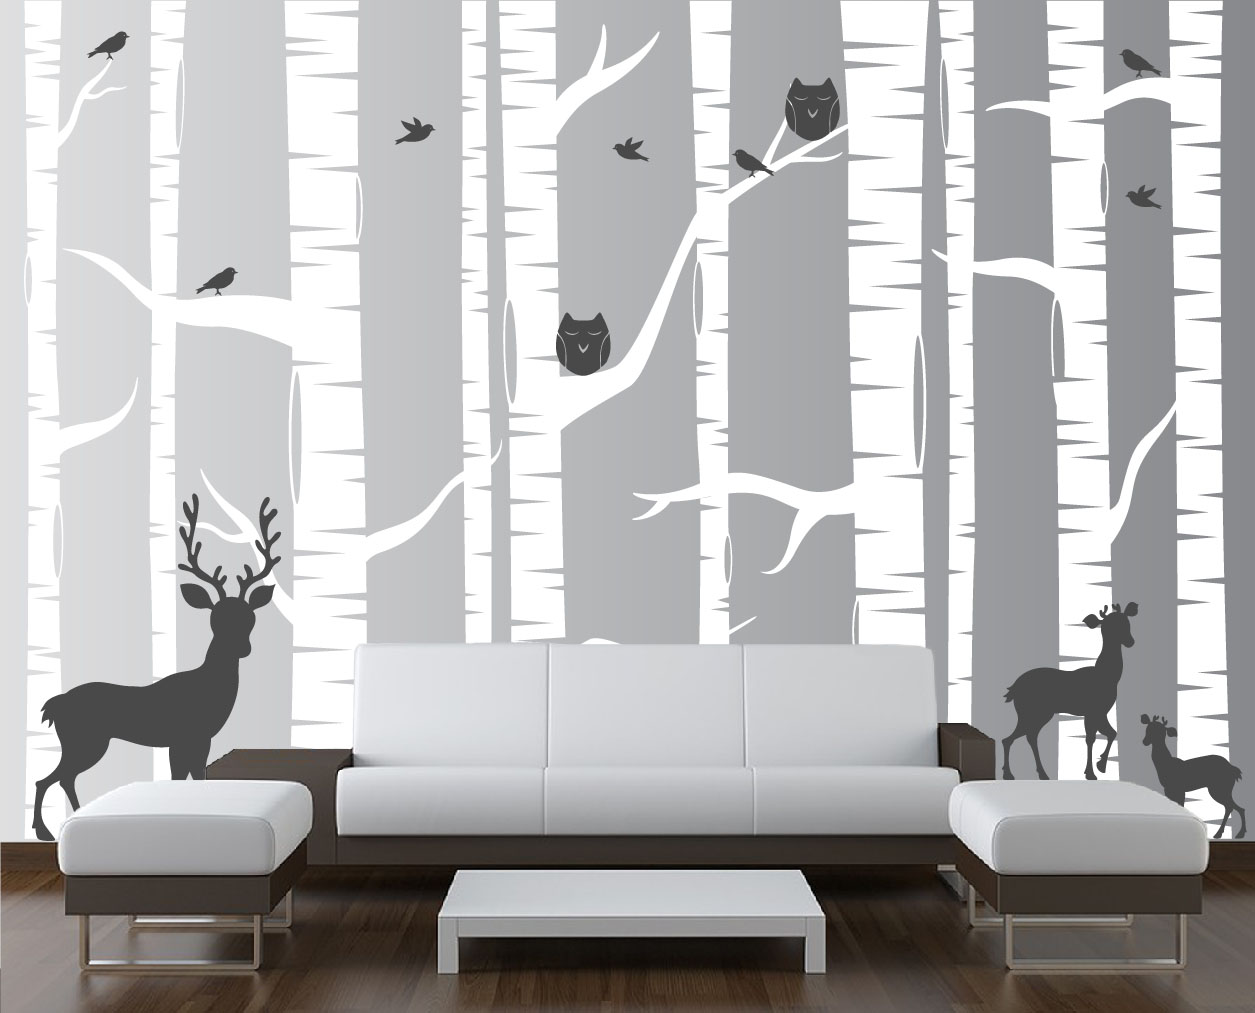 birch-tree-wall-decal-1323.jpg